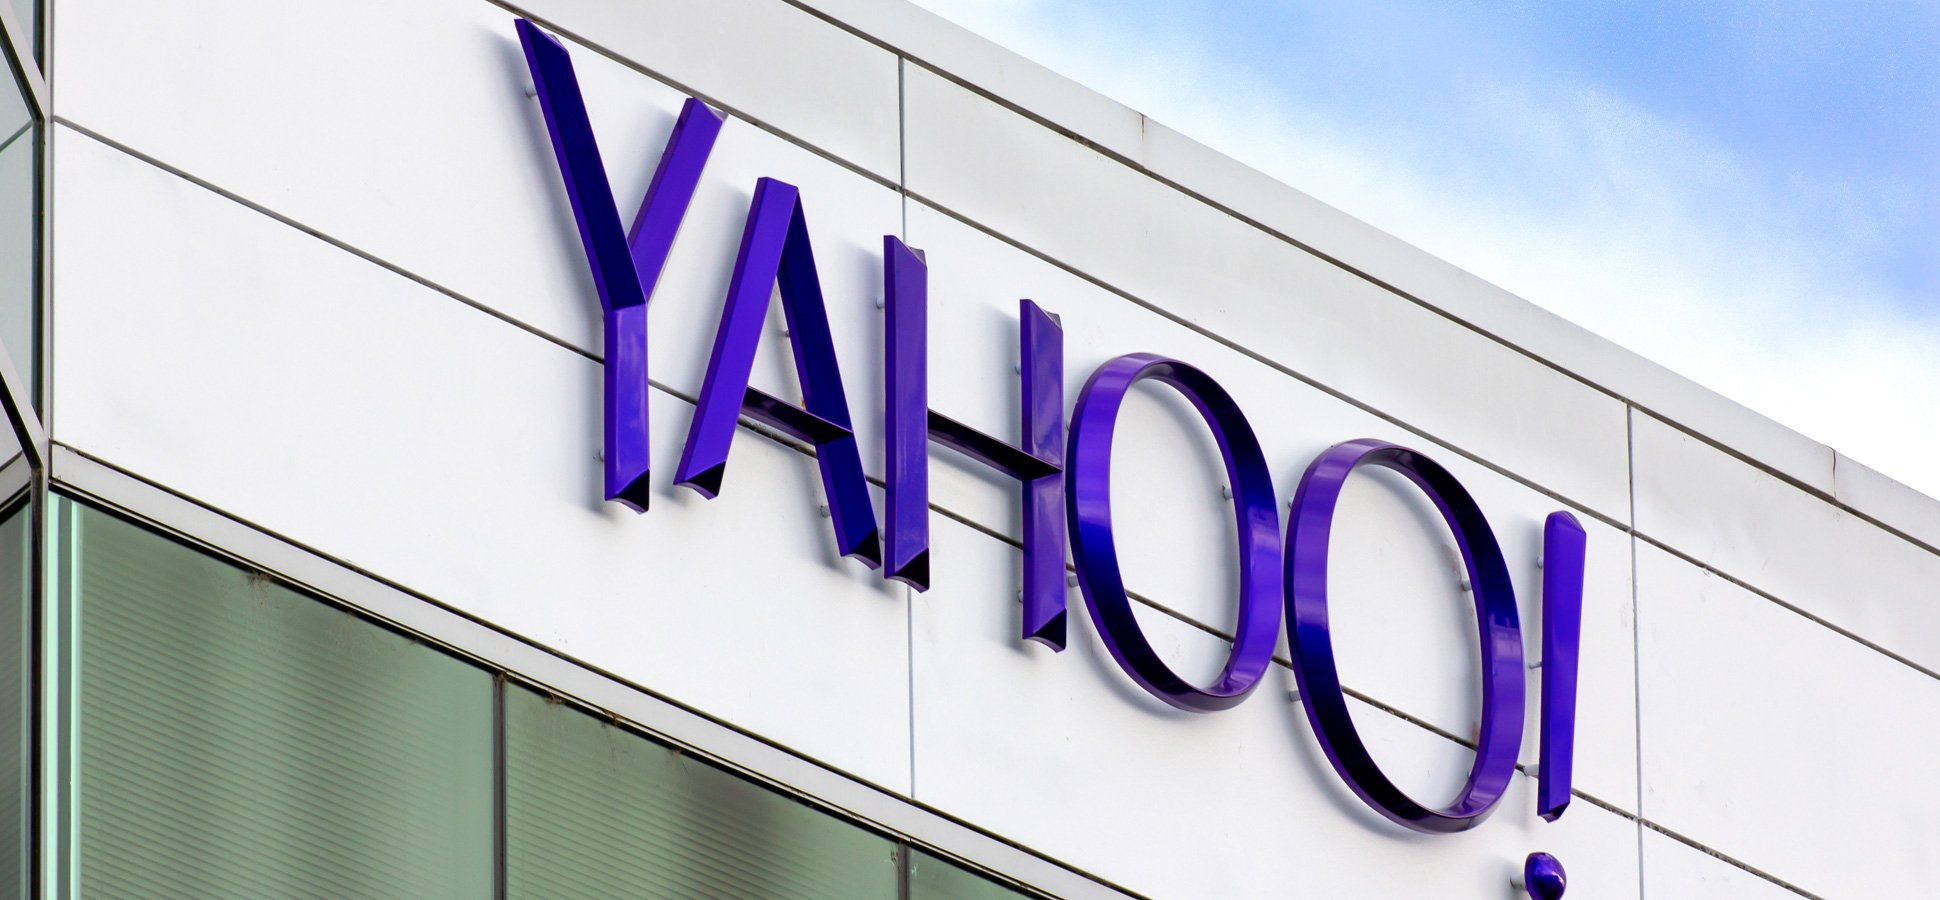 Yahoo Founder Warns Of Tech Divide Returning World To 'dark Age'